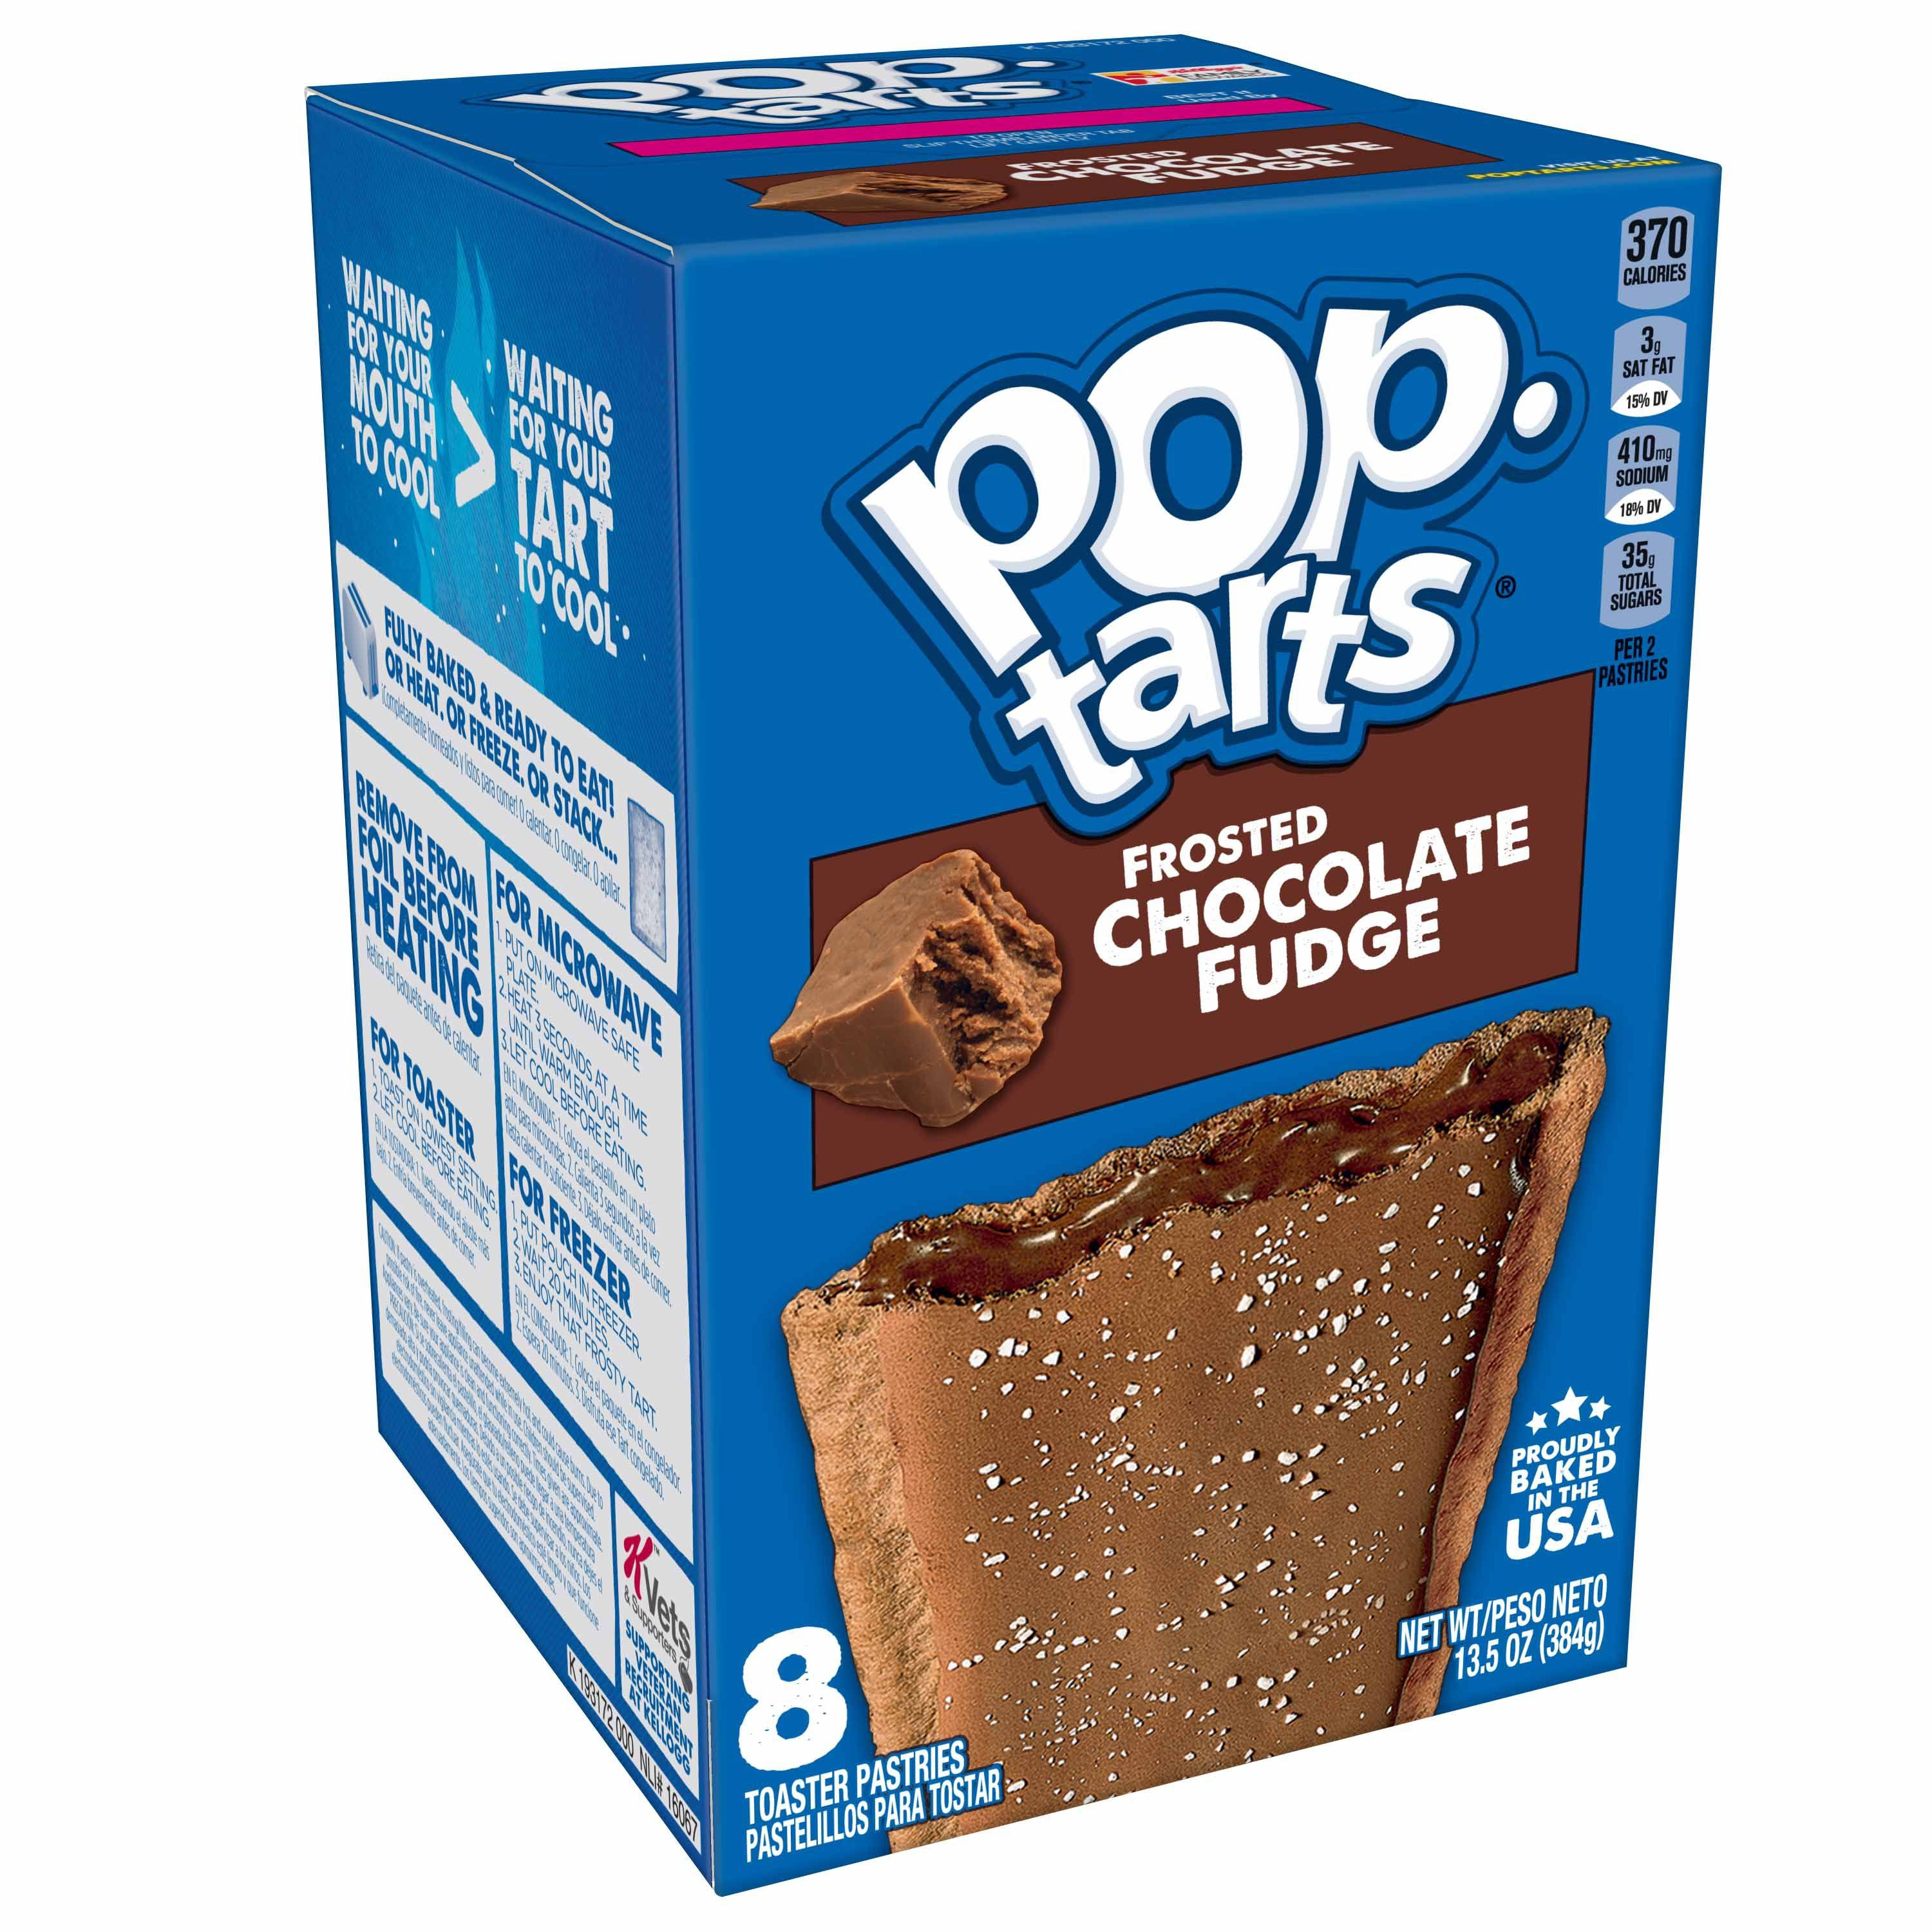 Pop Tarts Toaster Pastries, Frosted Chocolate Fudge - 8 pack, 13.5 oz pastries